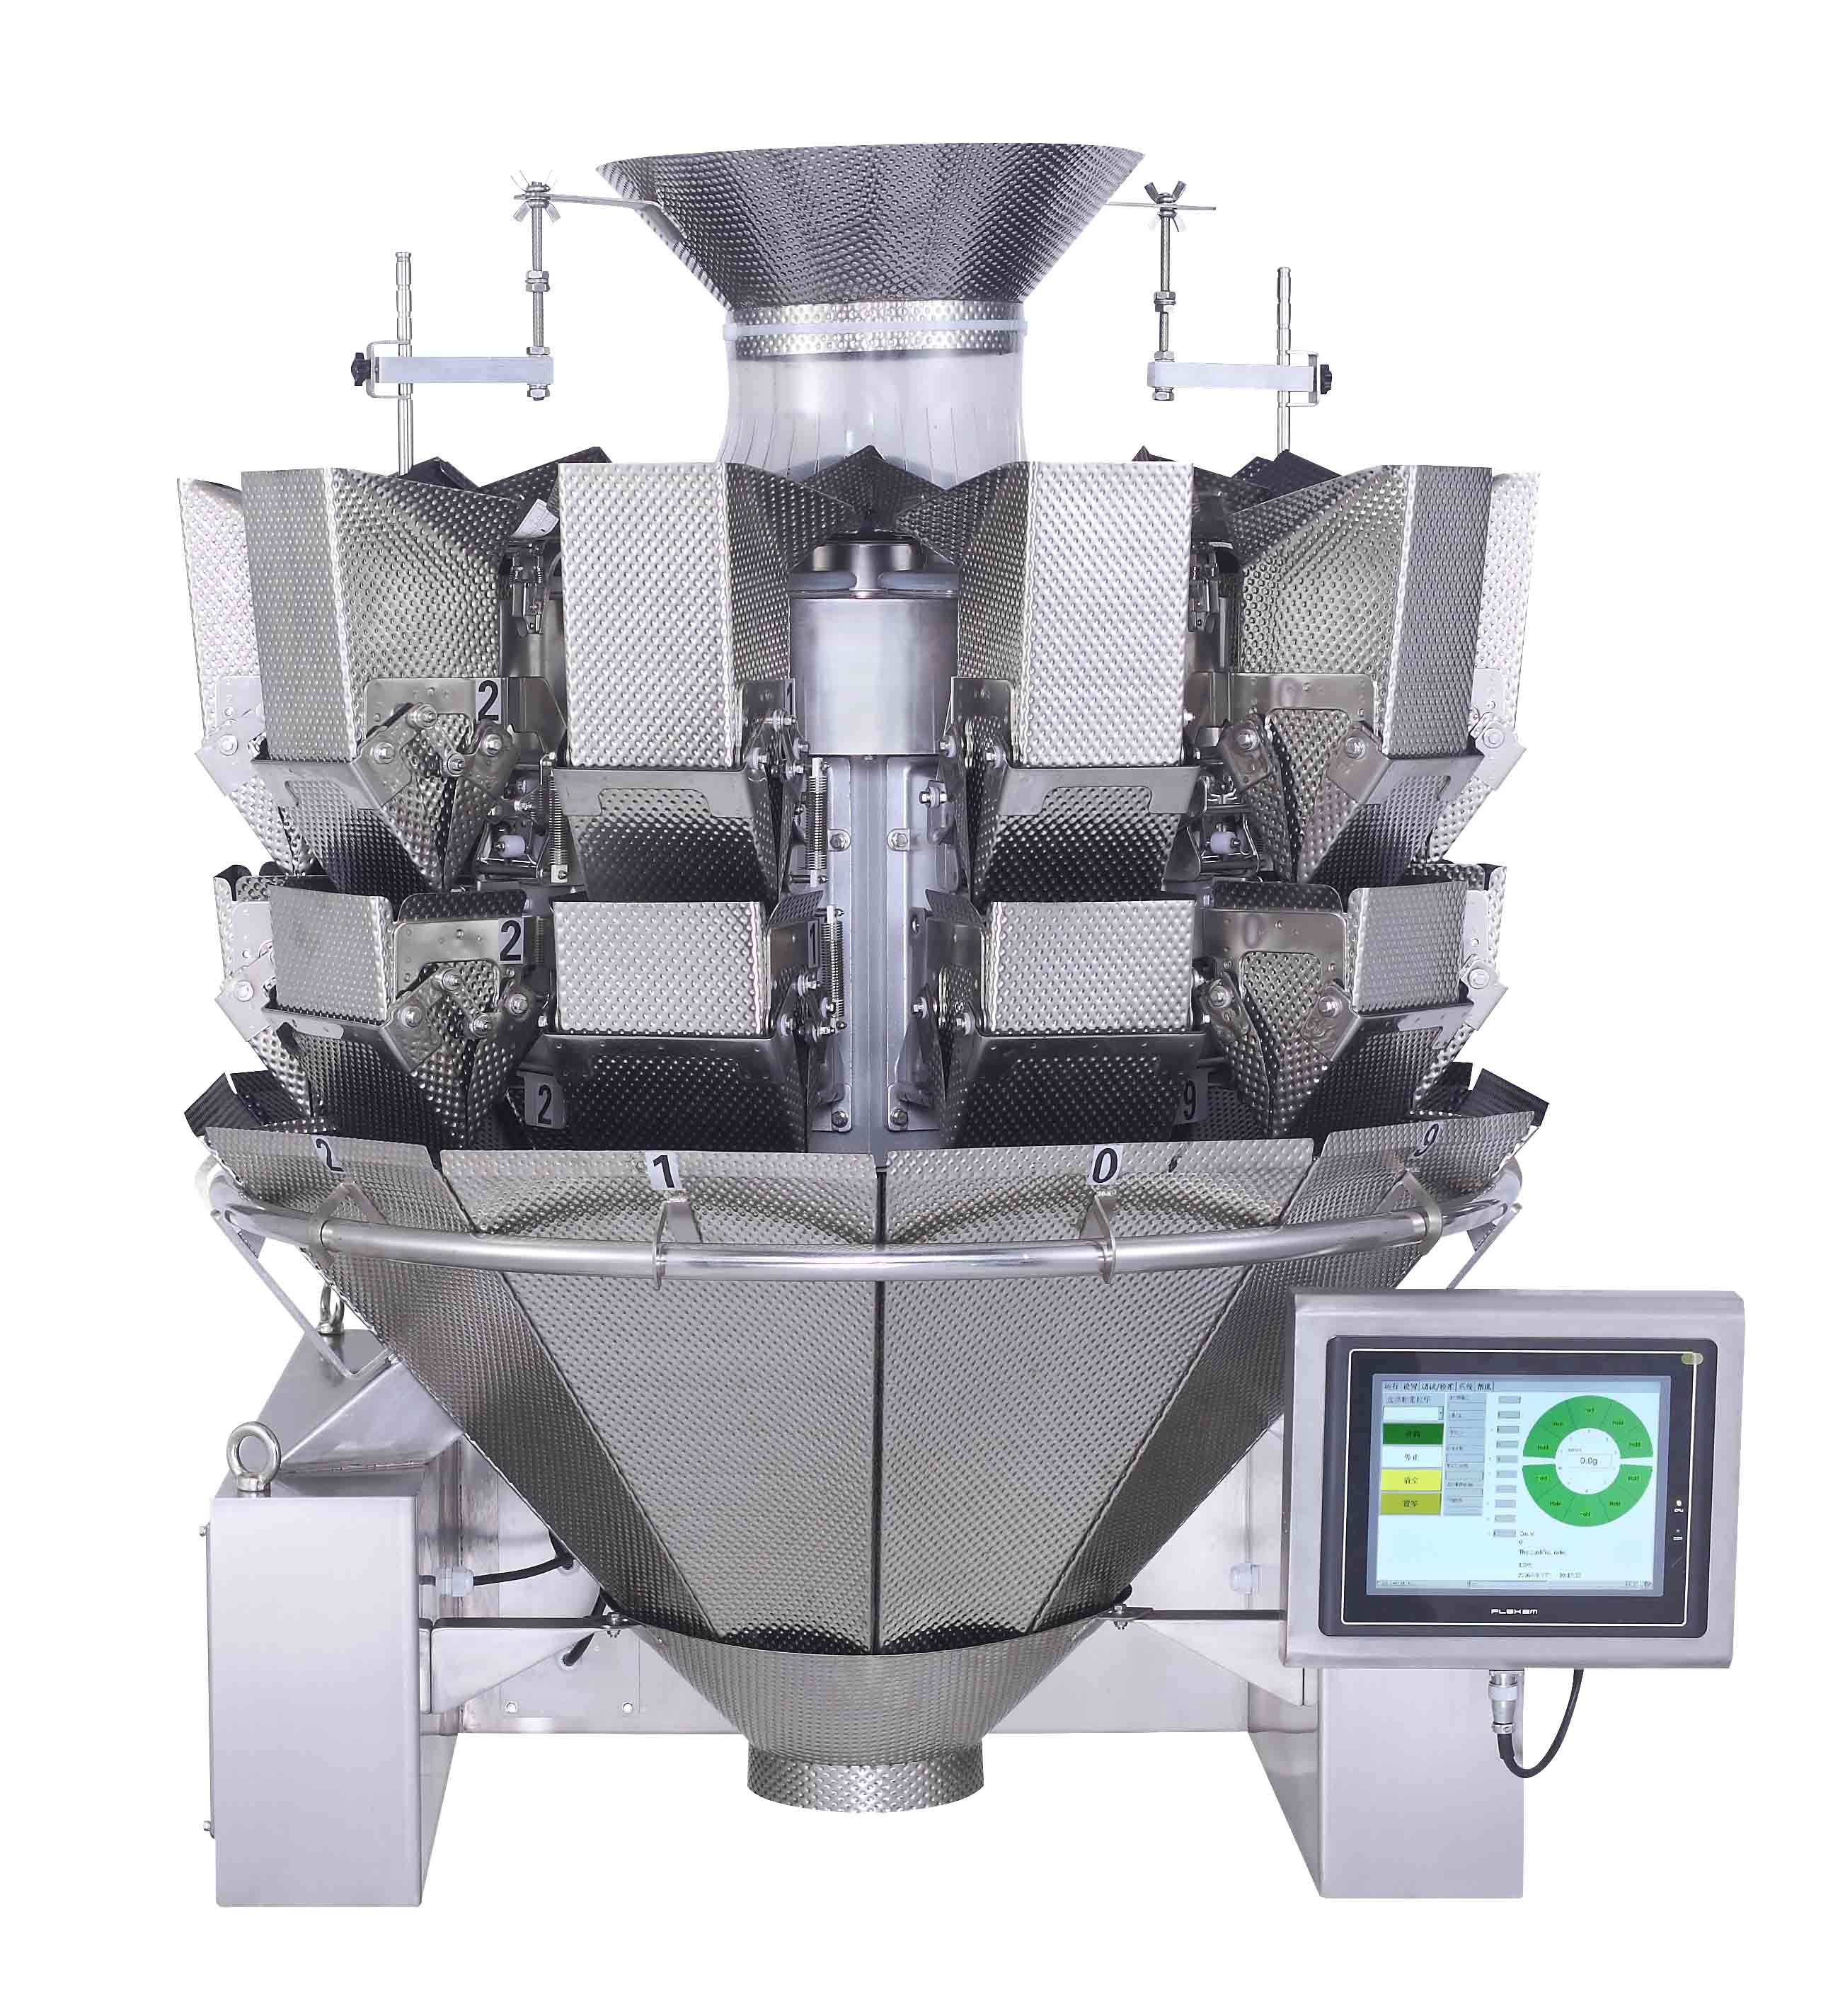 10 Heads Double Door Multihead Weigher with Touch Screen